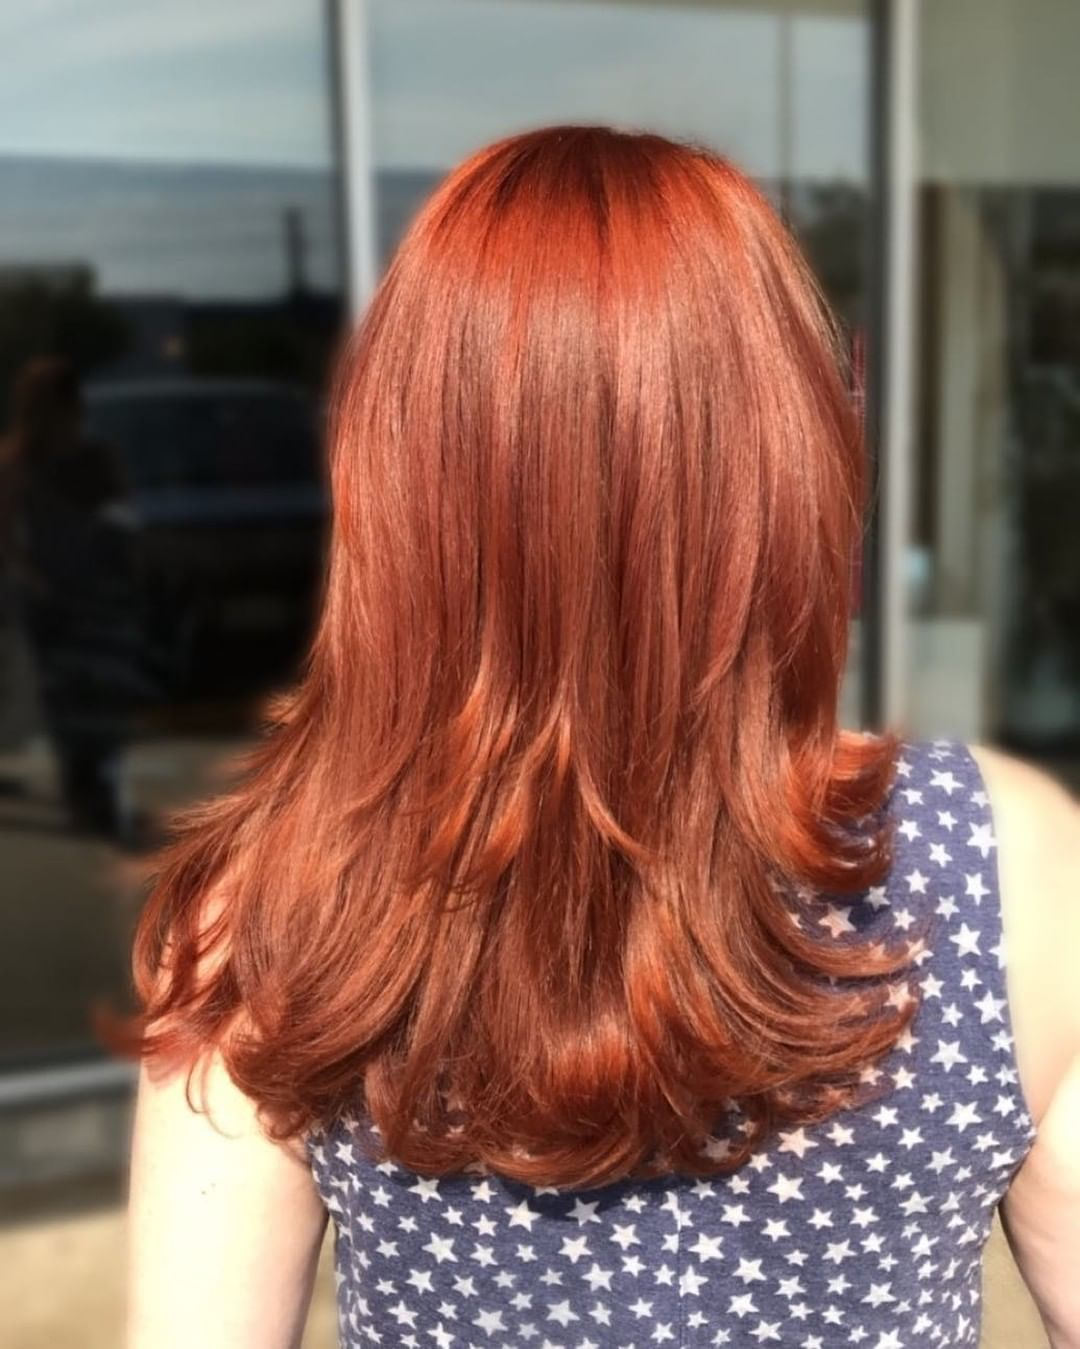 A Muted Autumnal Red Hair Color With A Bit Of Subtle Fire And A High Shine Finish We Love Everything About This Fall Hair Colors Wine Hair New Hair Colors